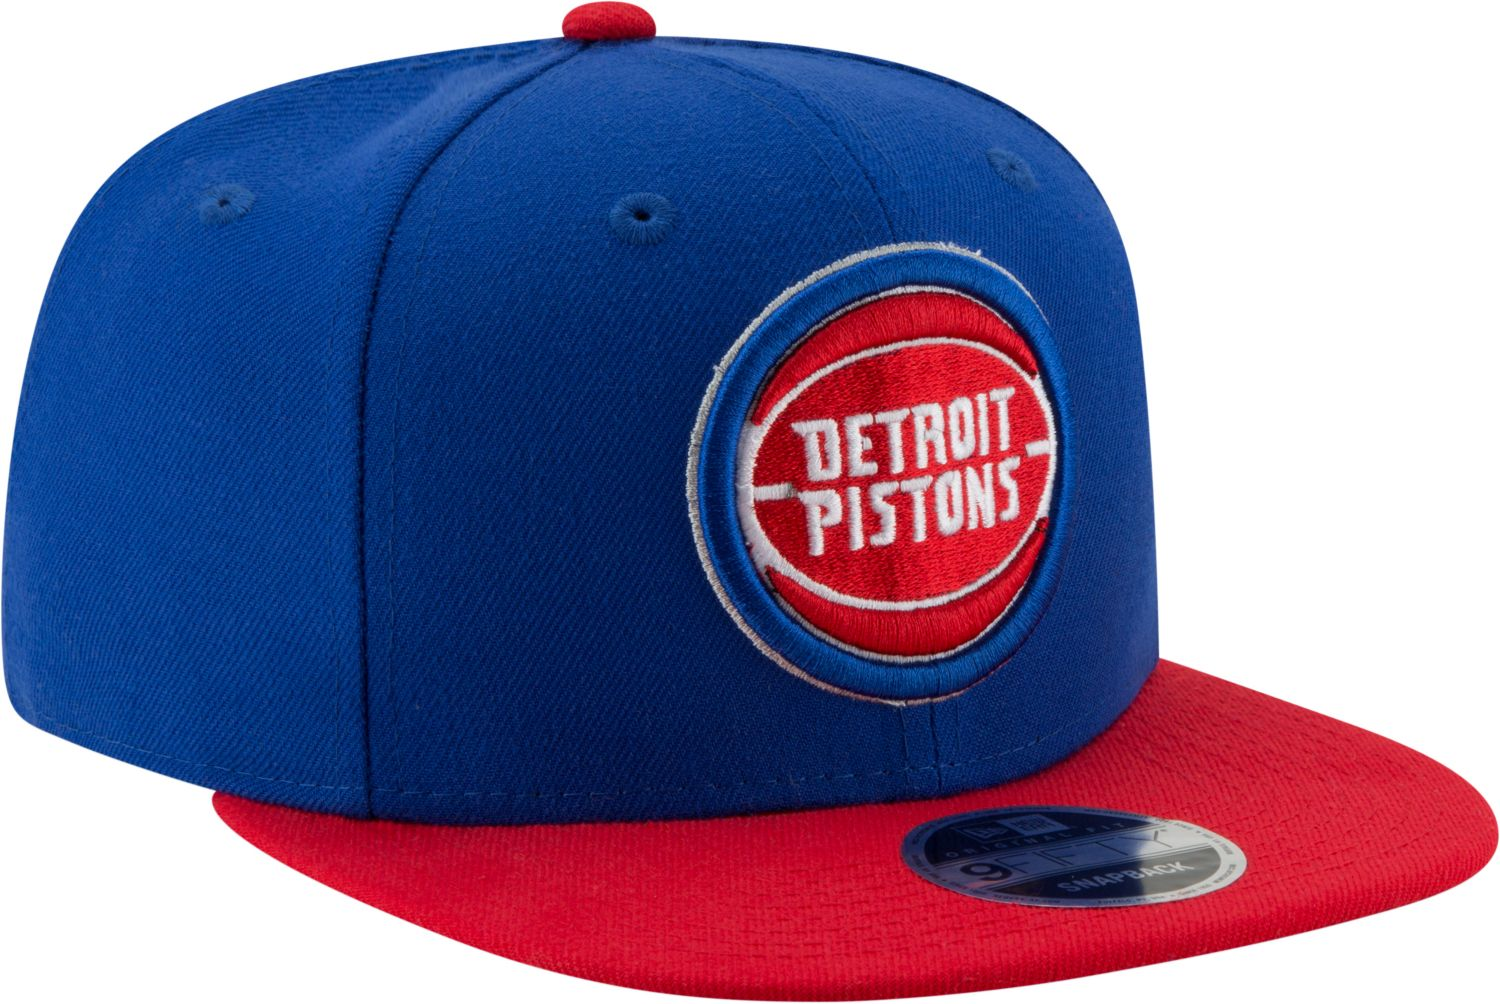 New Era Detroit Pistons 2Tone 9FIFTY NBA Adjustable Snapback Hat / Red + Blue